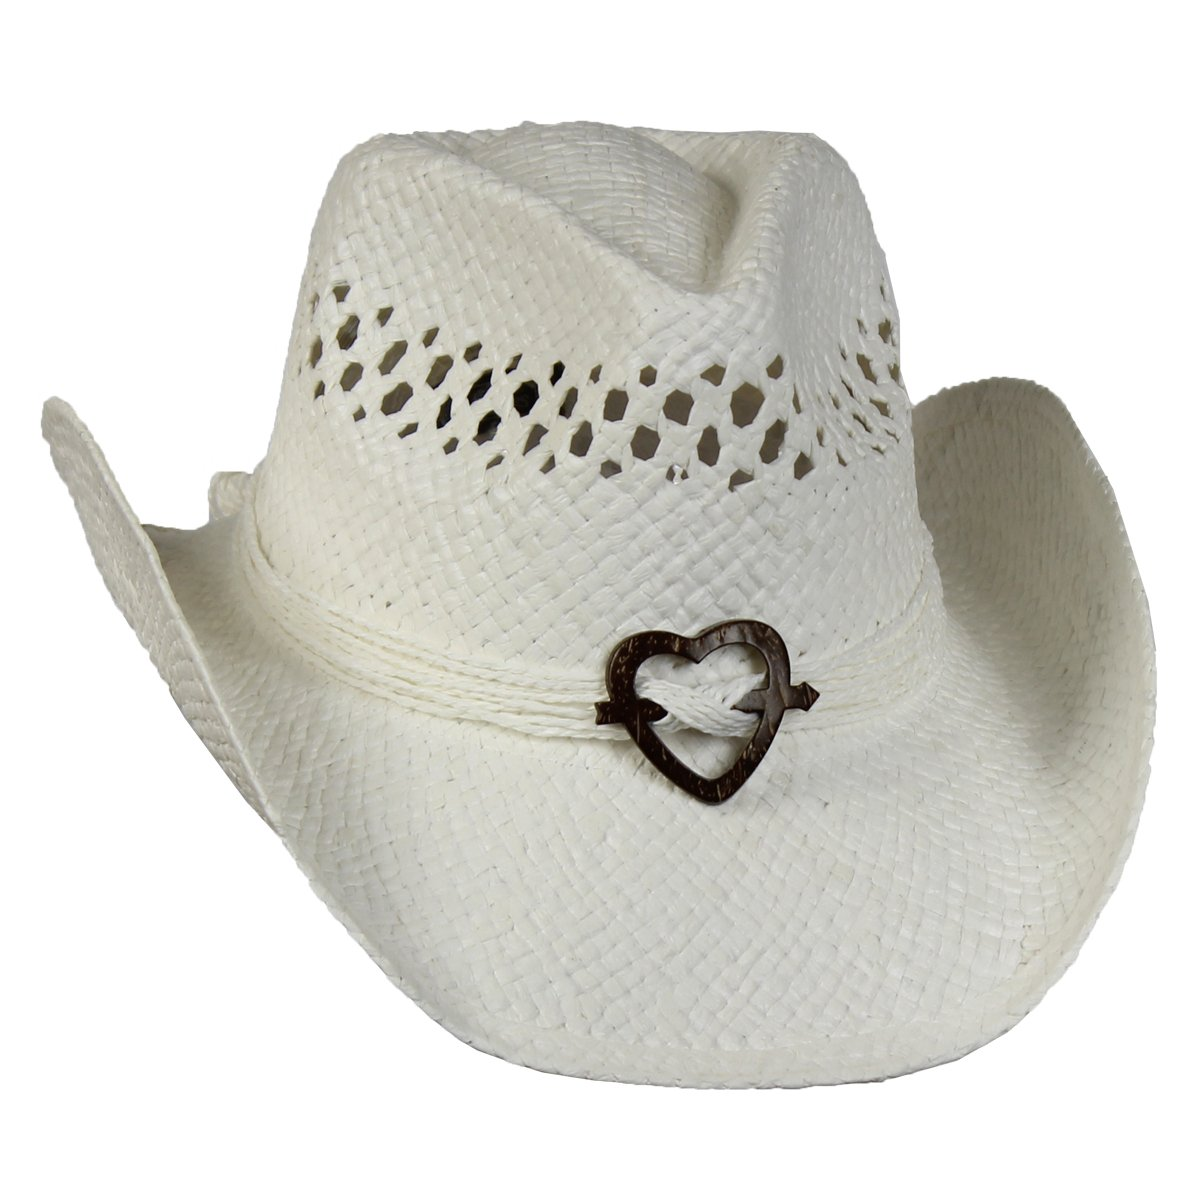 Saddleback Hats Vented Straw Cowboy Hat w/Wood Heart Band –Shapeable Cowgirl Western